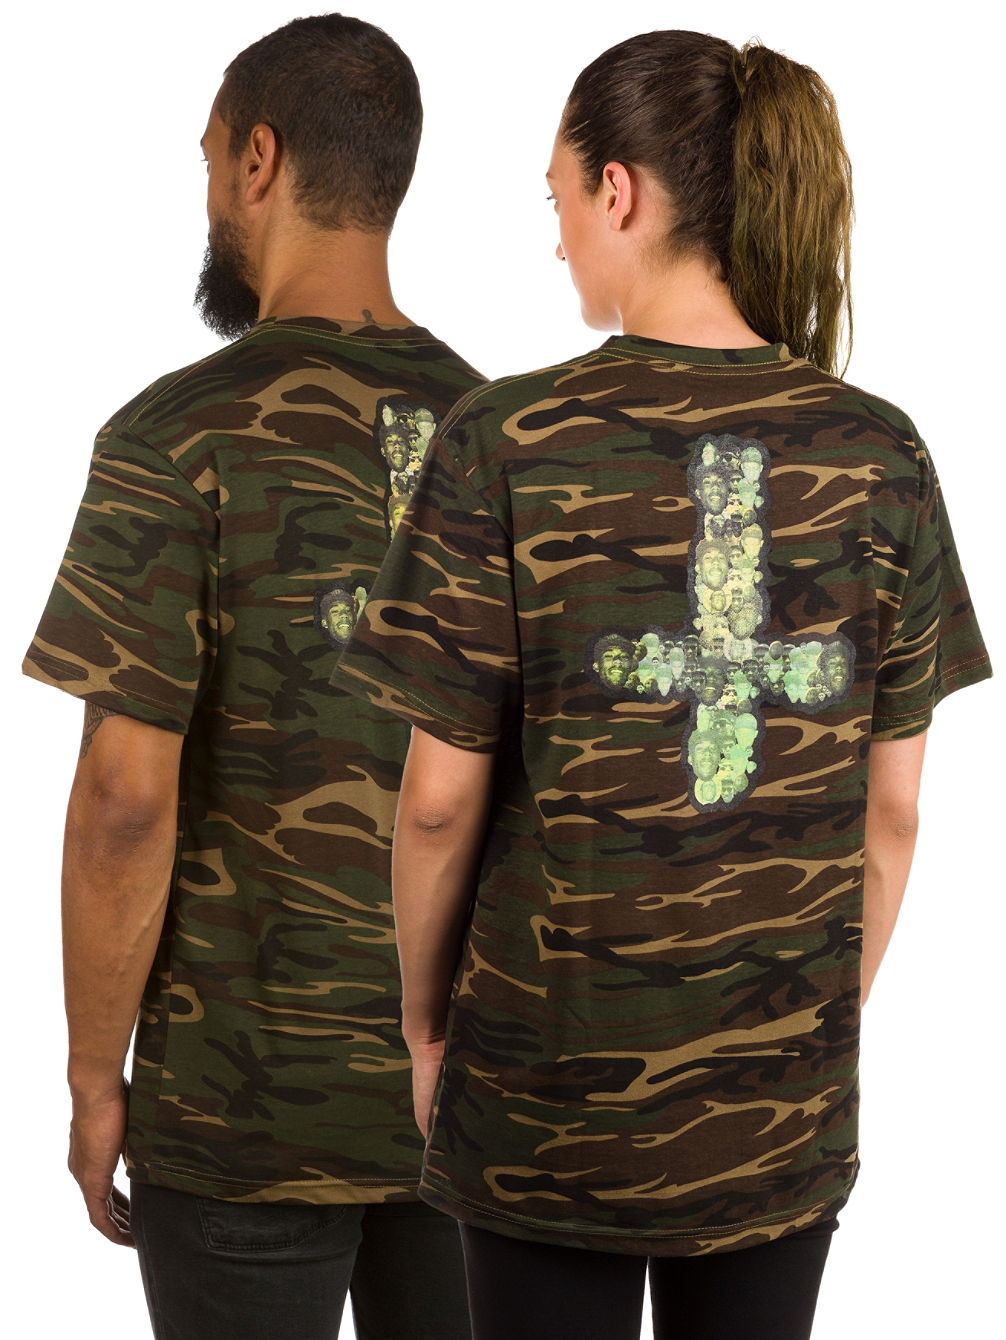 Mellowhype 65 Camo Camiseta